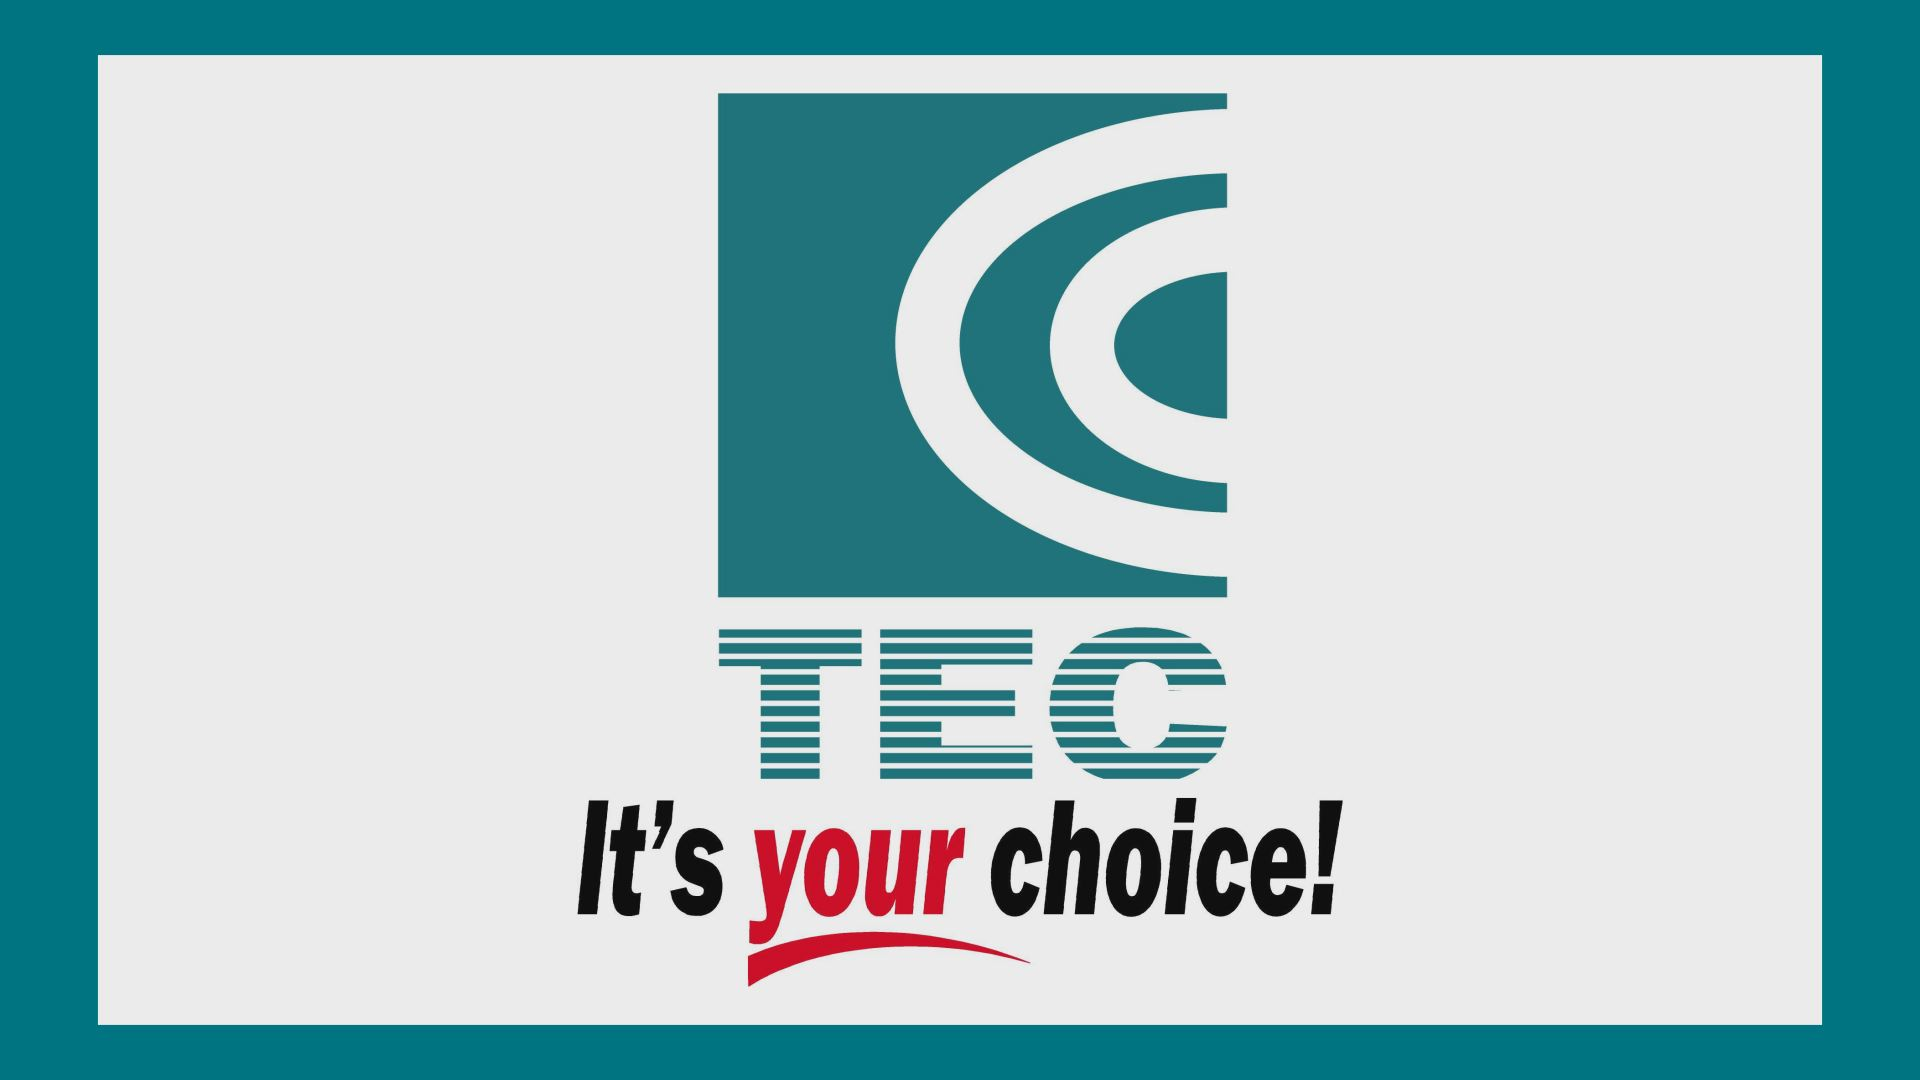 CC Tec Video Production